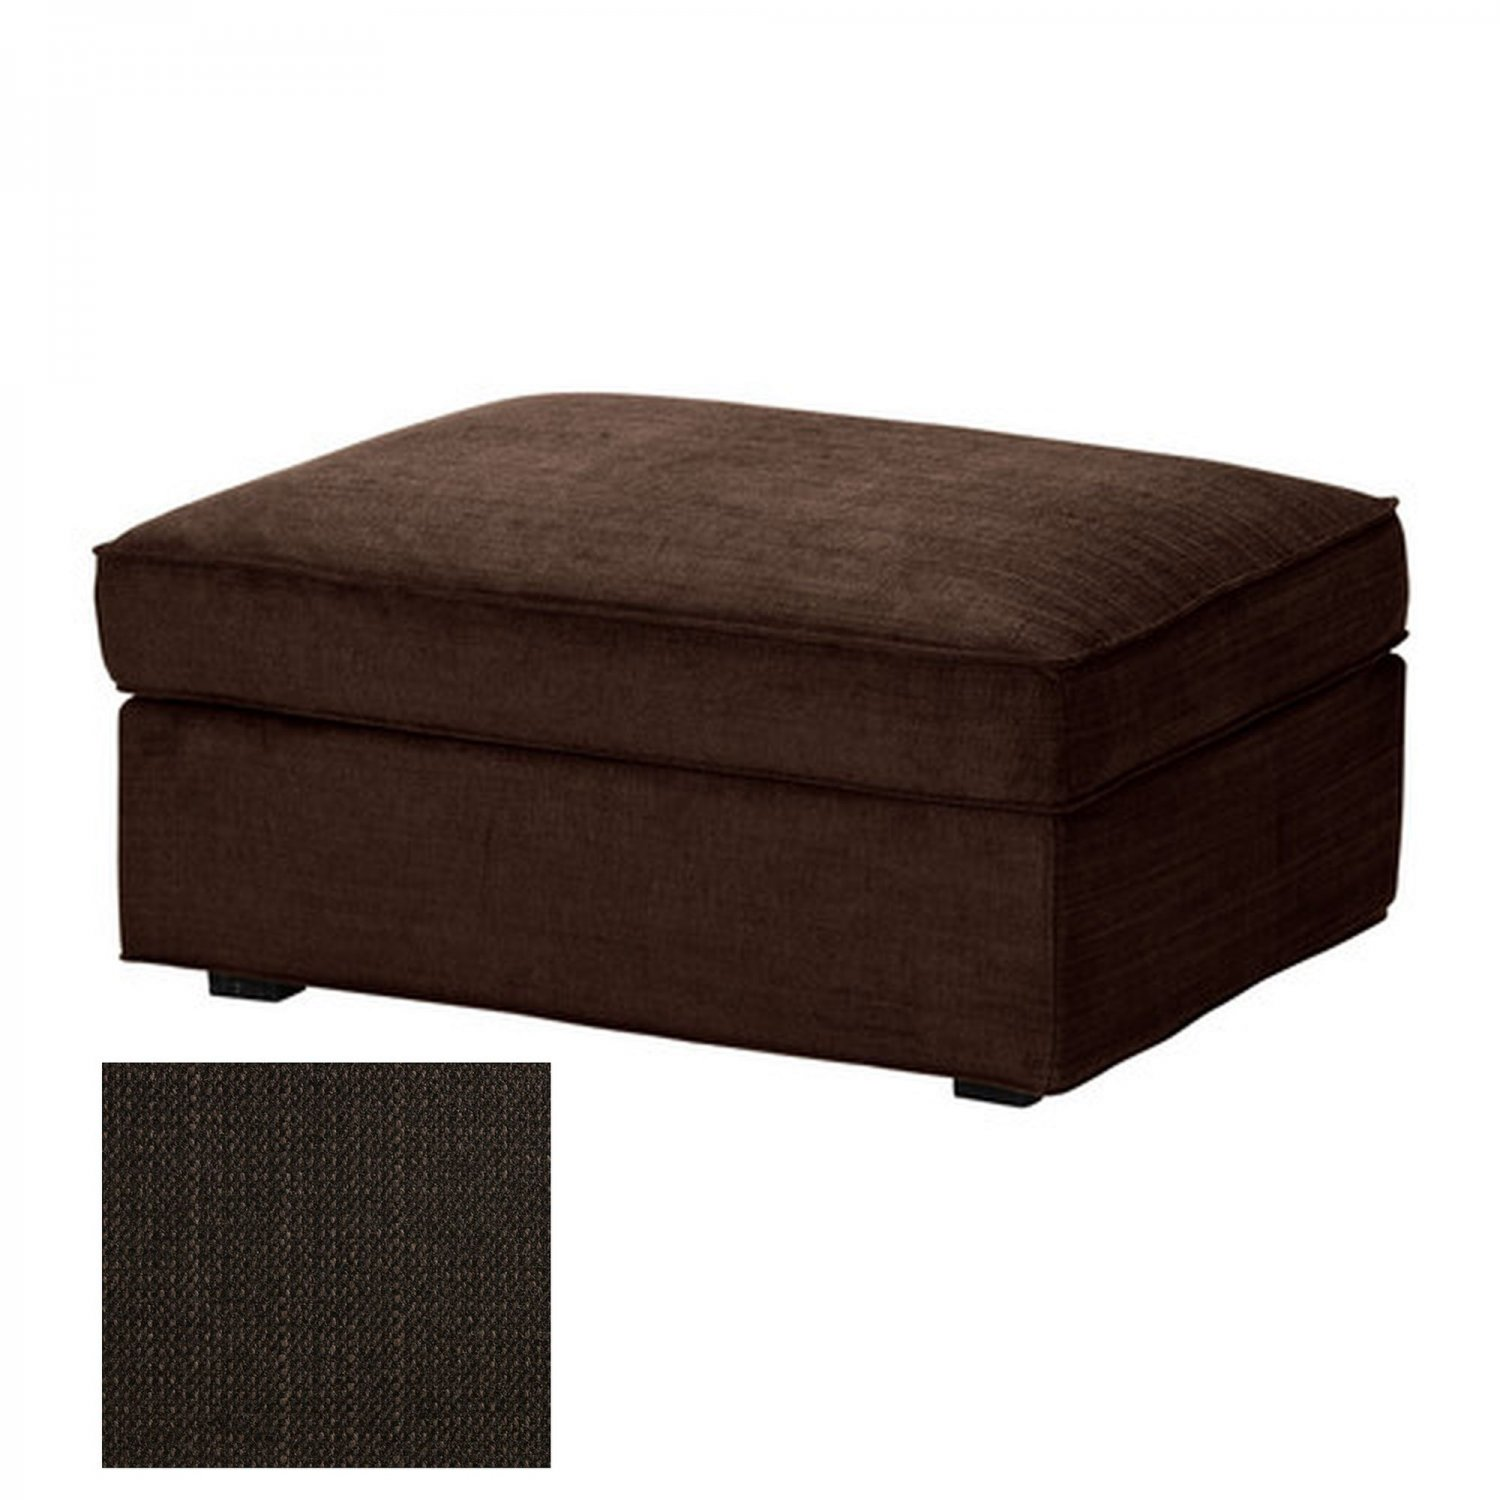 ikea kivik footstool slipcover ottoman cover tullinge dark. Black Bedroom Furniture Sets. Home Design Ideas